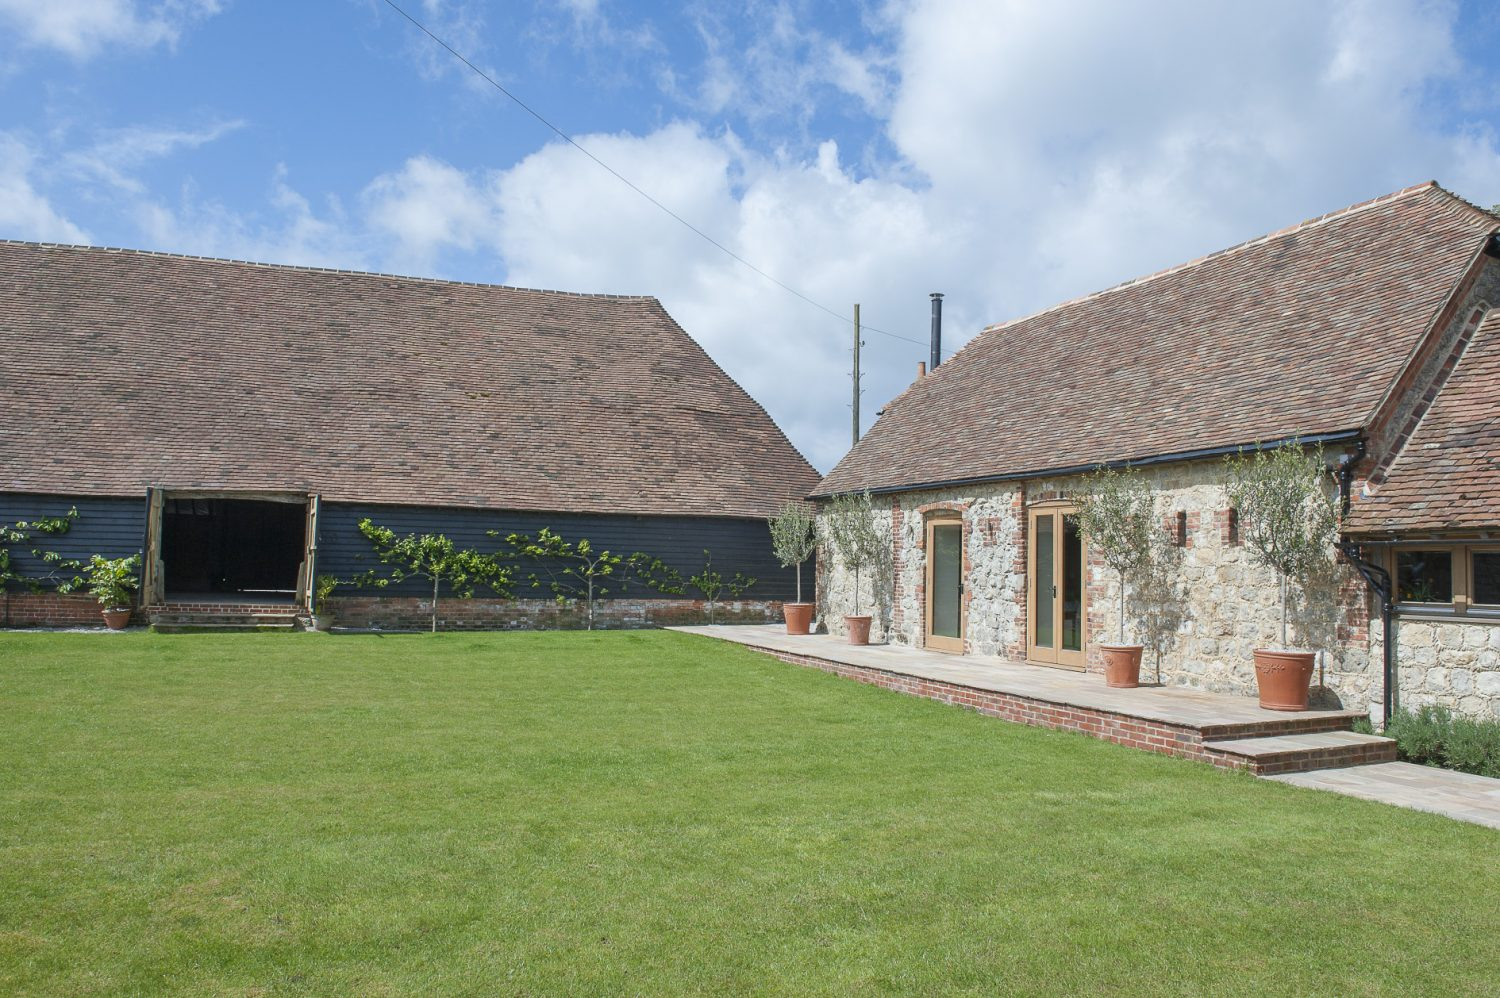 The traditional 16th century Kent threshing barn covers an area of some 350 square metres and features a soaring vaulted interior and truly breathtaking timberwork